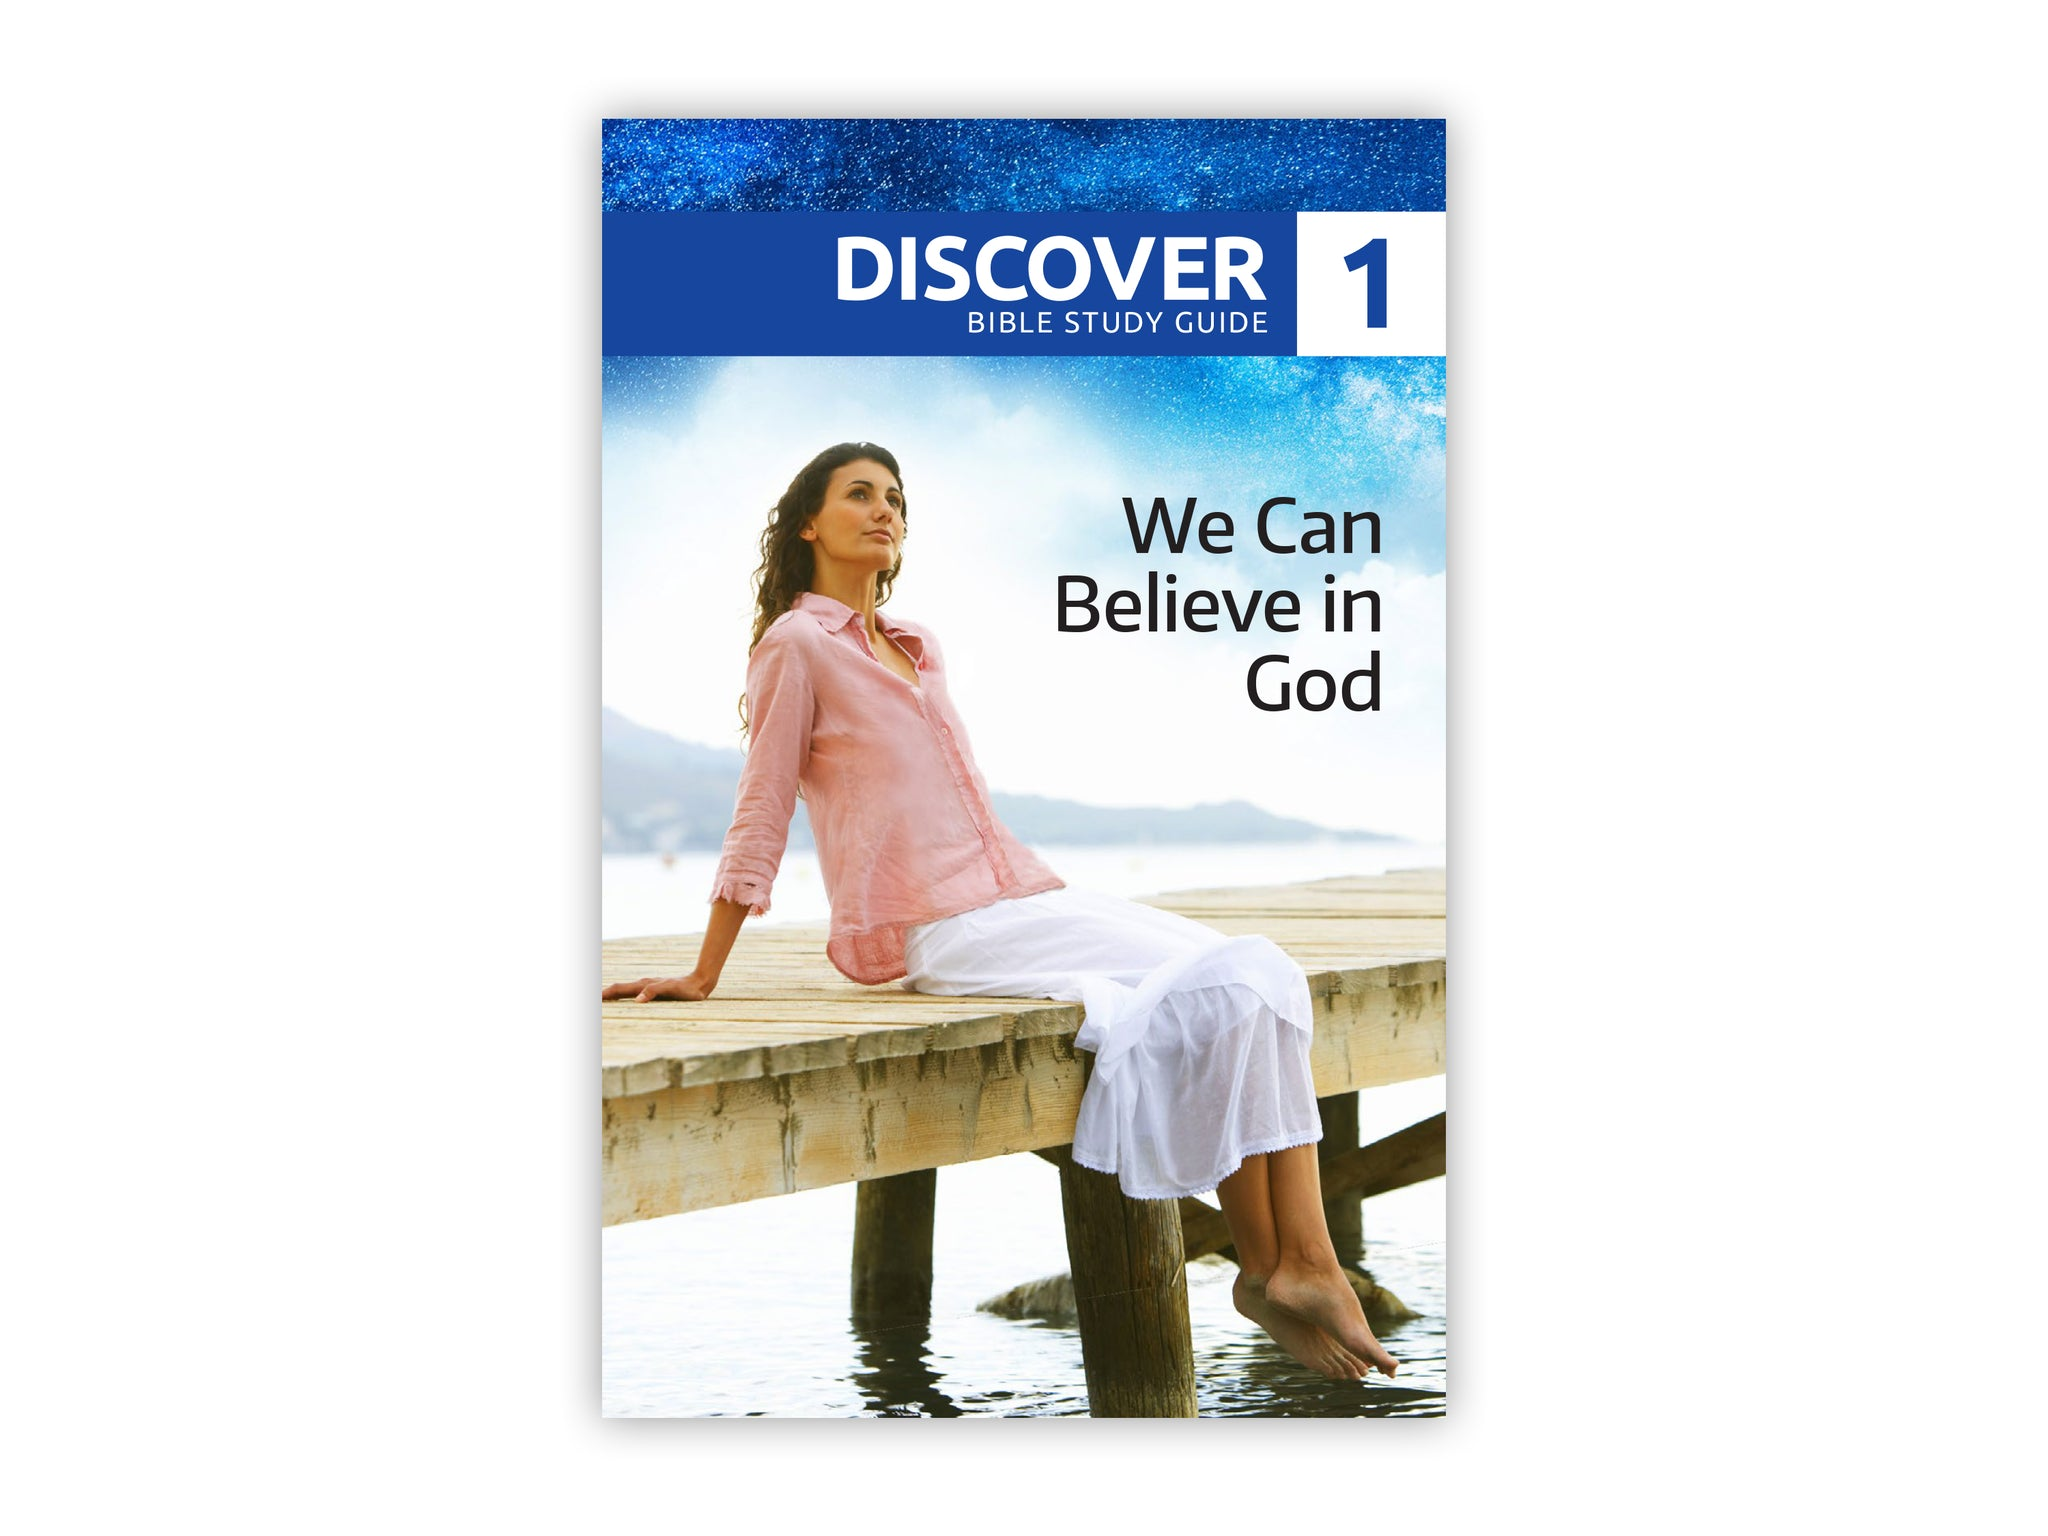 Discover Bible Study Guide #1 - We Can Believe in God